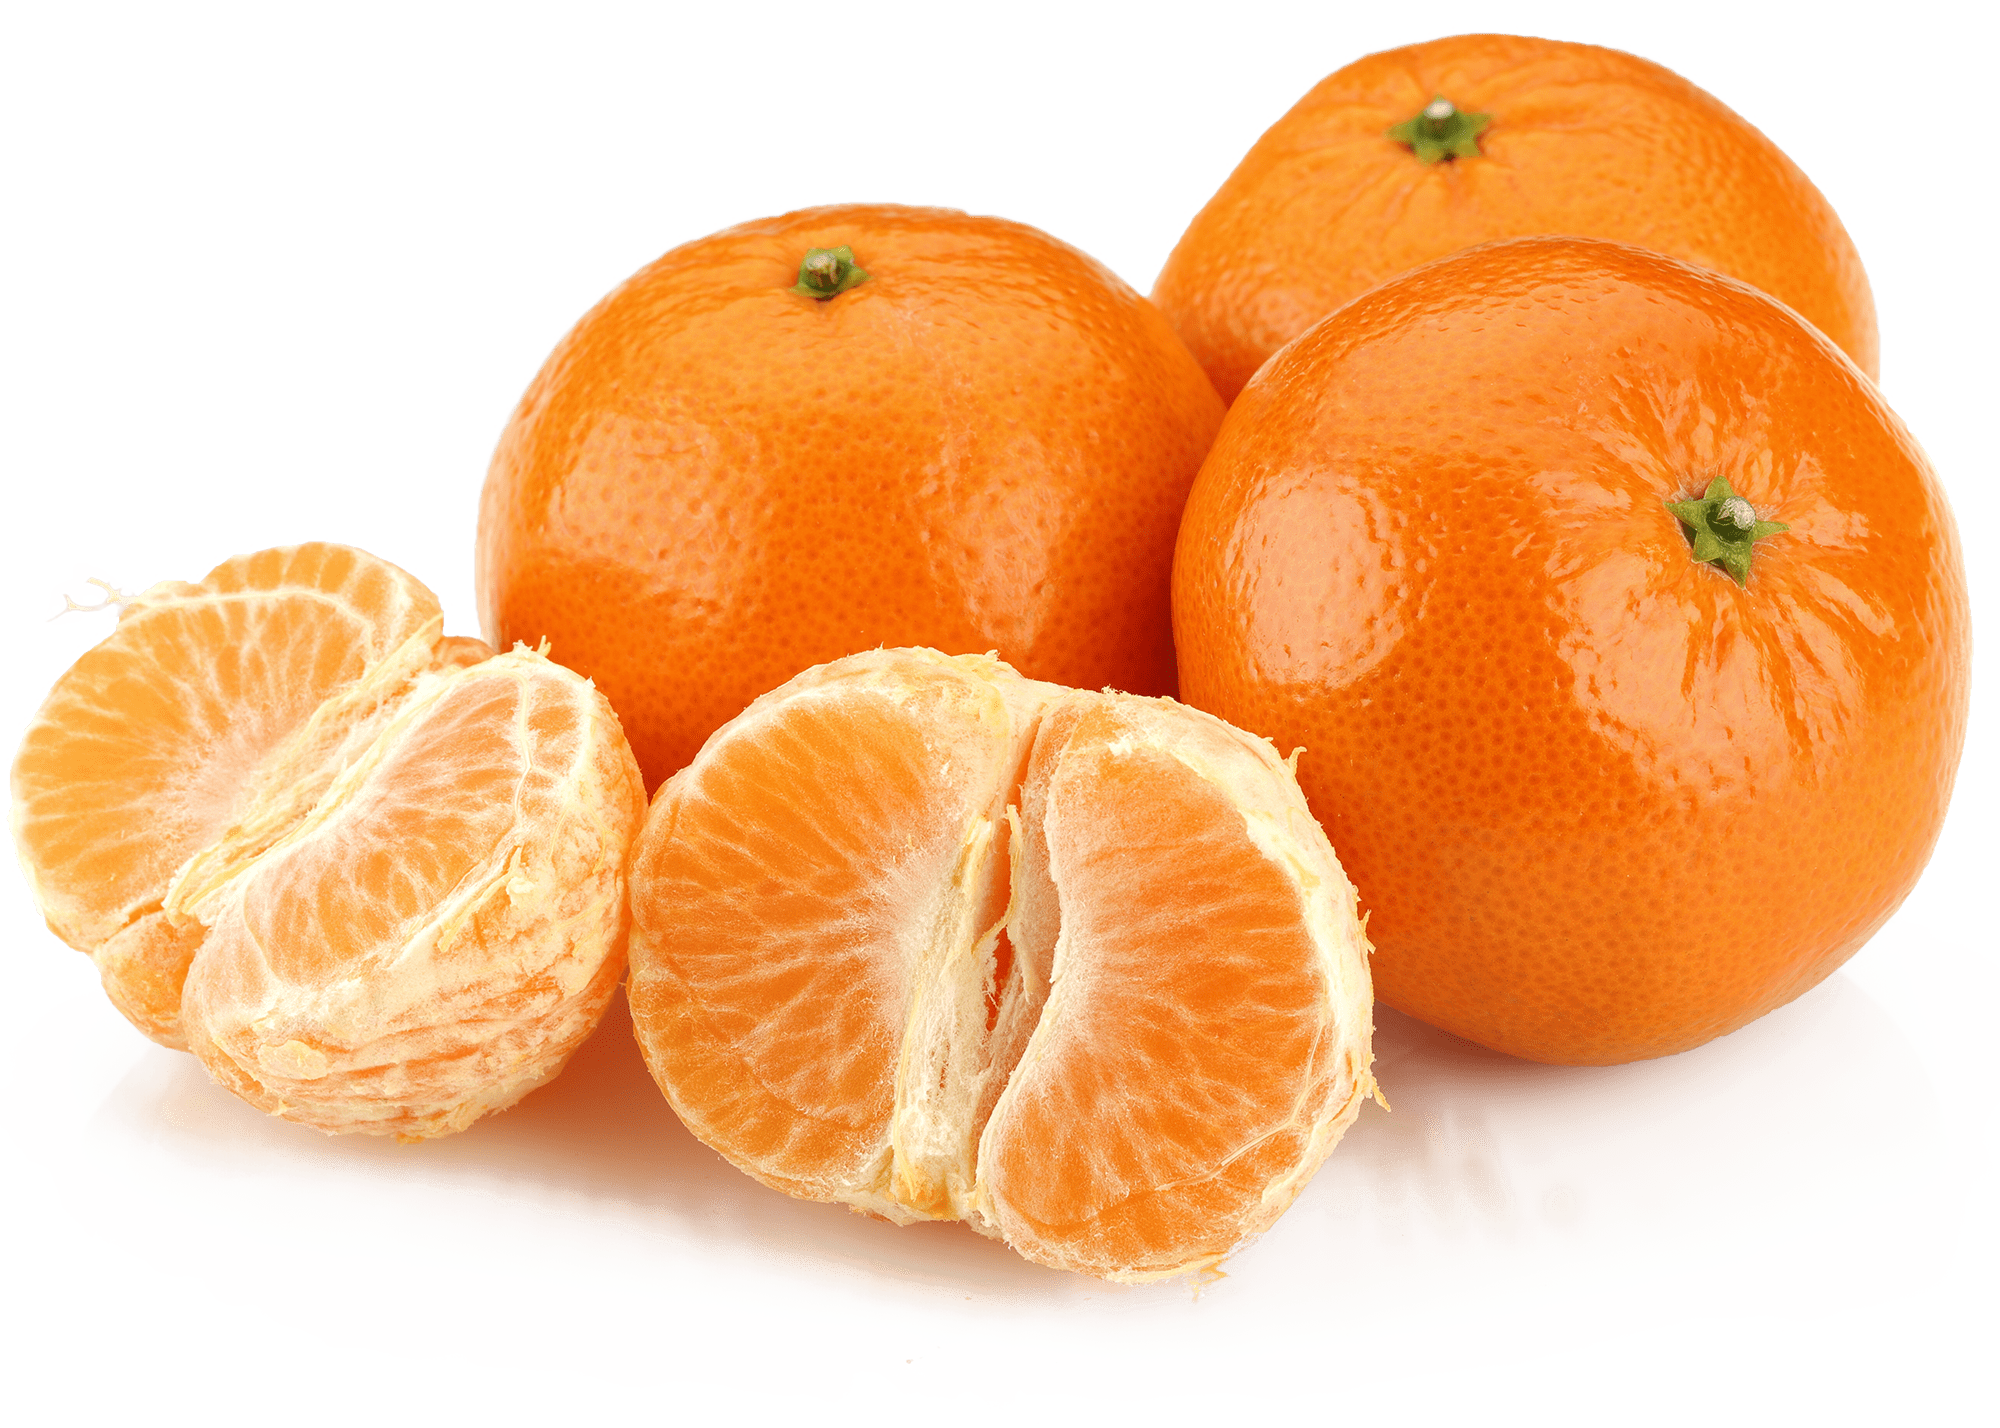 Three clementines with one peeled clementine in front